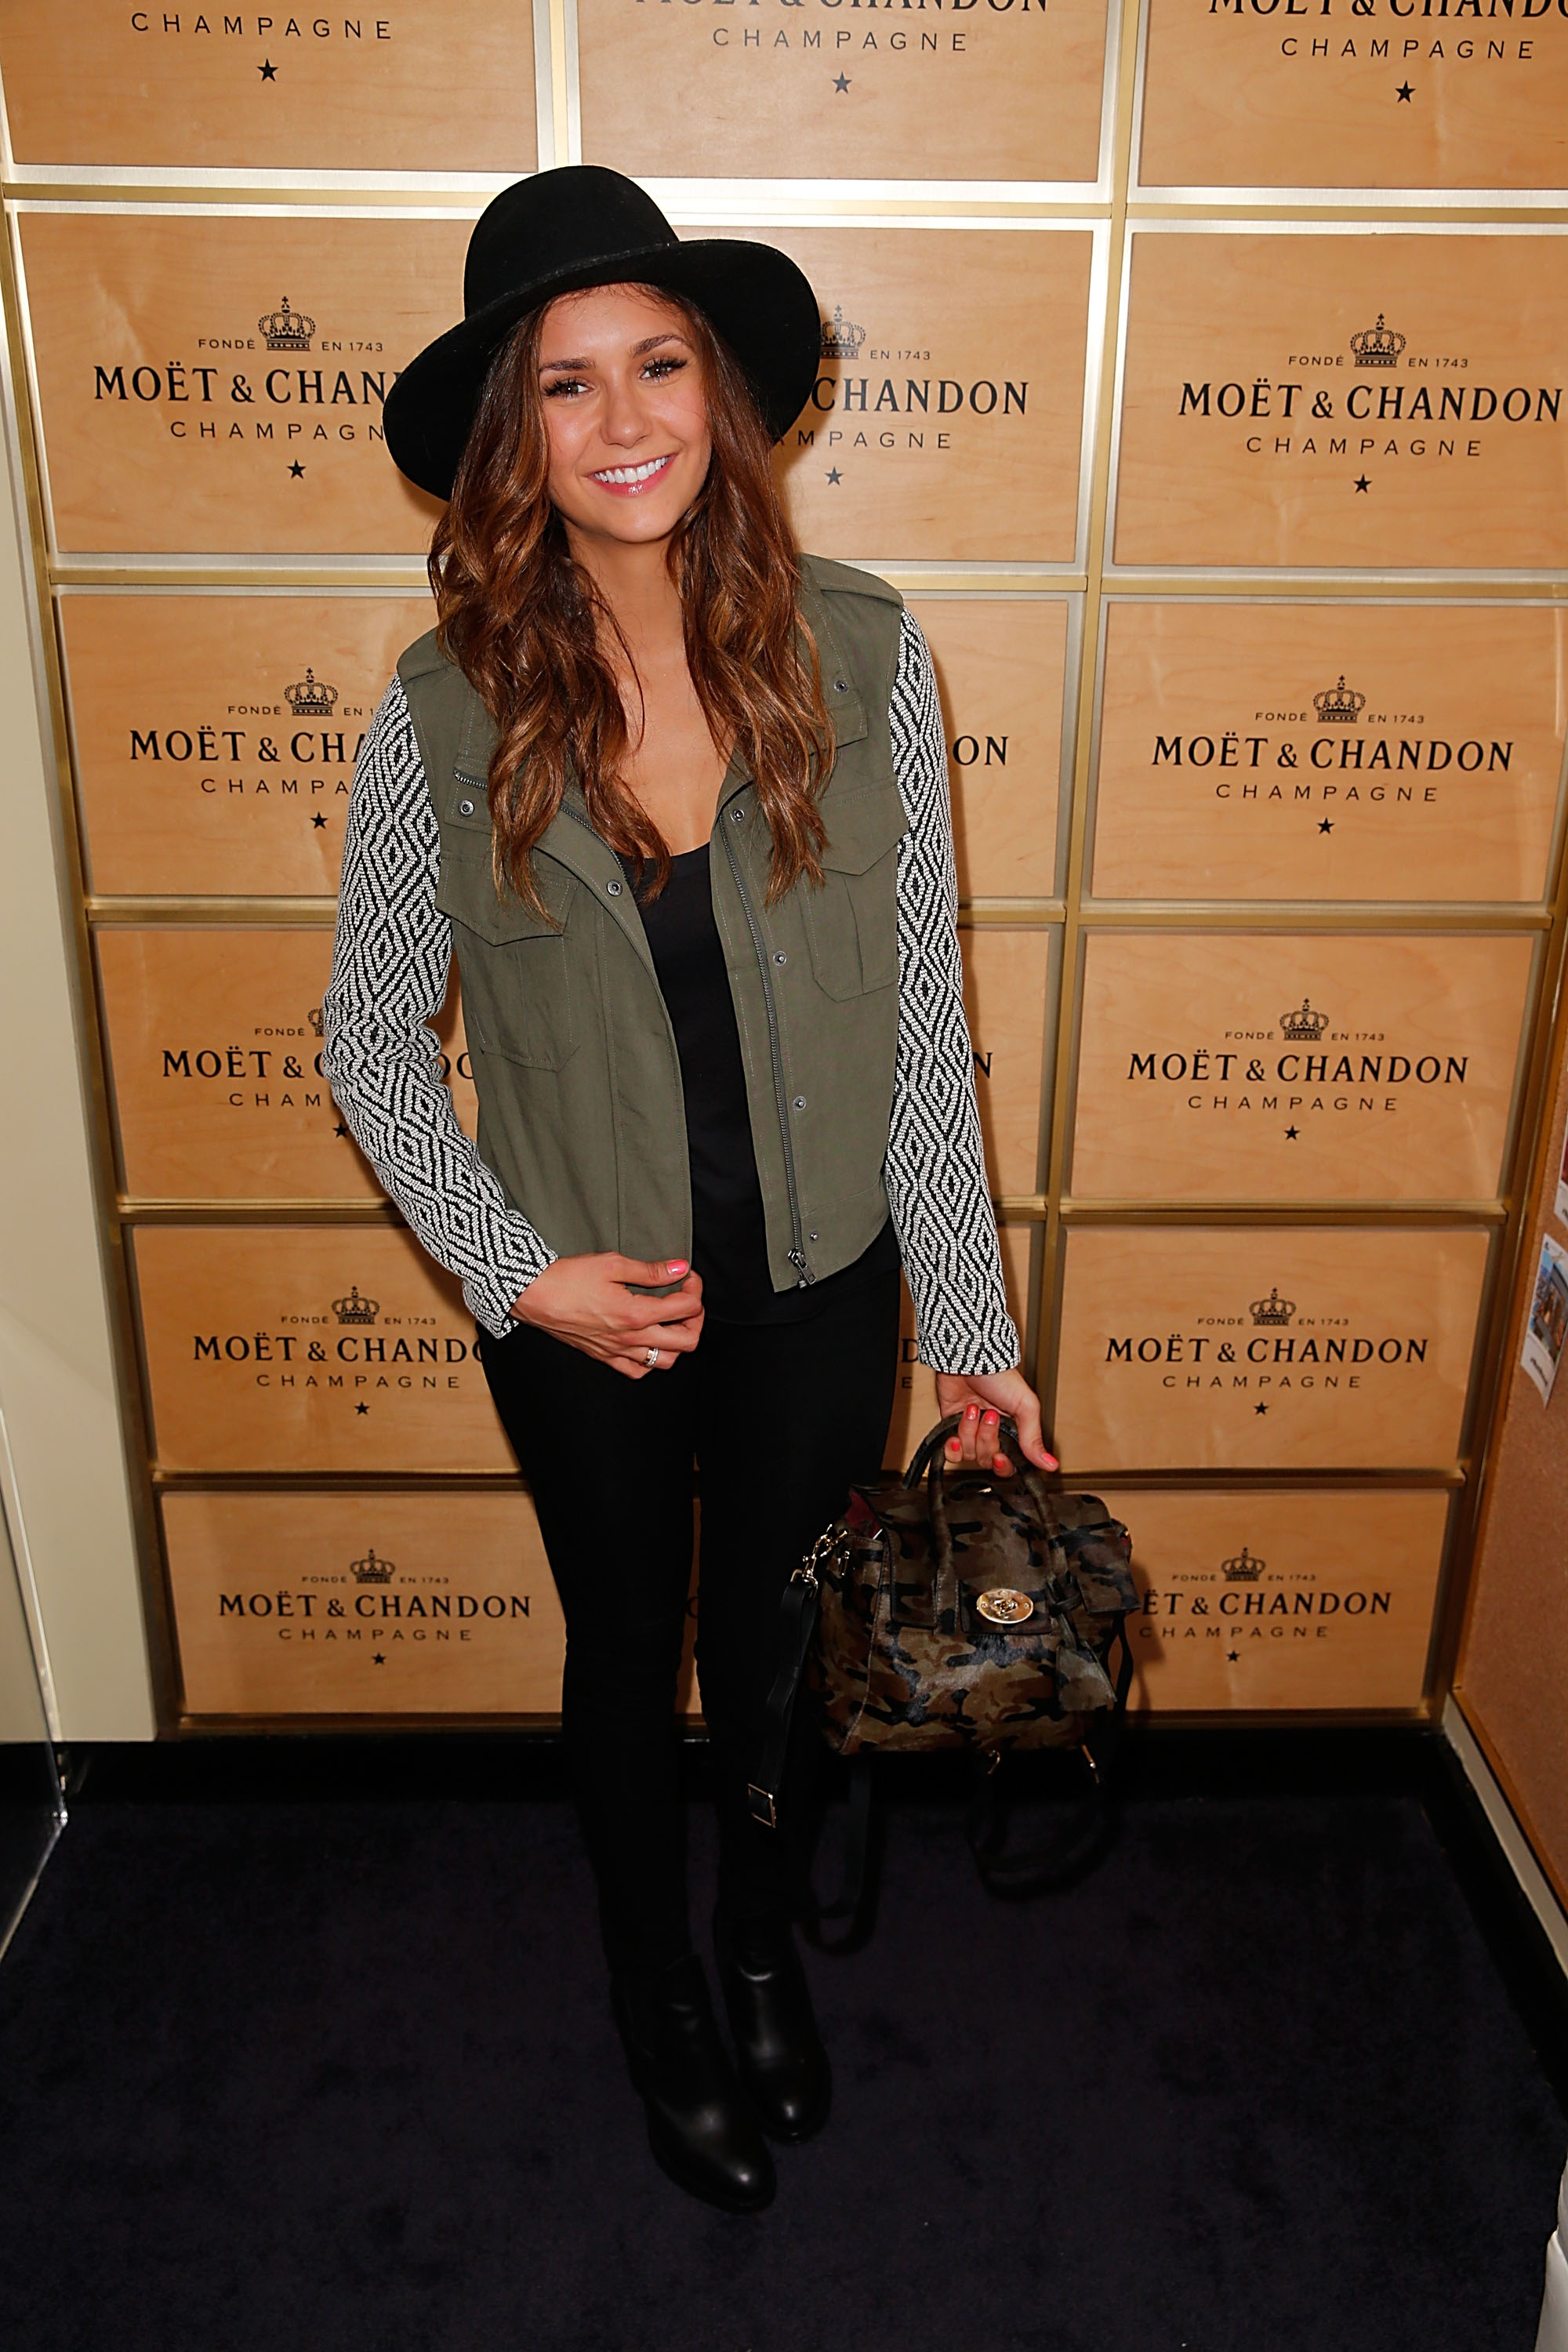 (Photo by Joe Scarnici/Getty Images for Moet & Chandon)